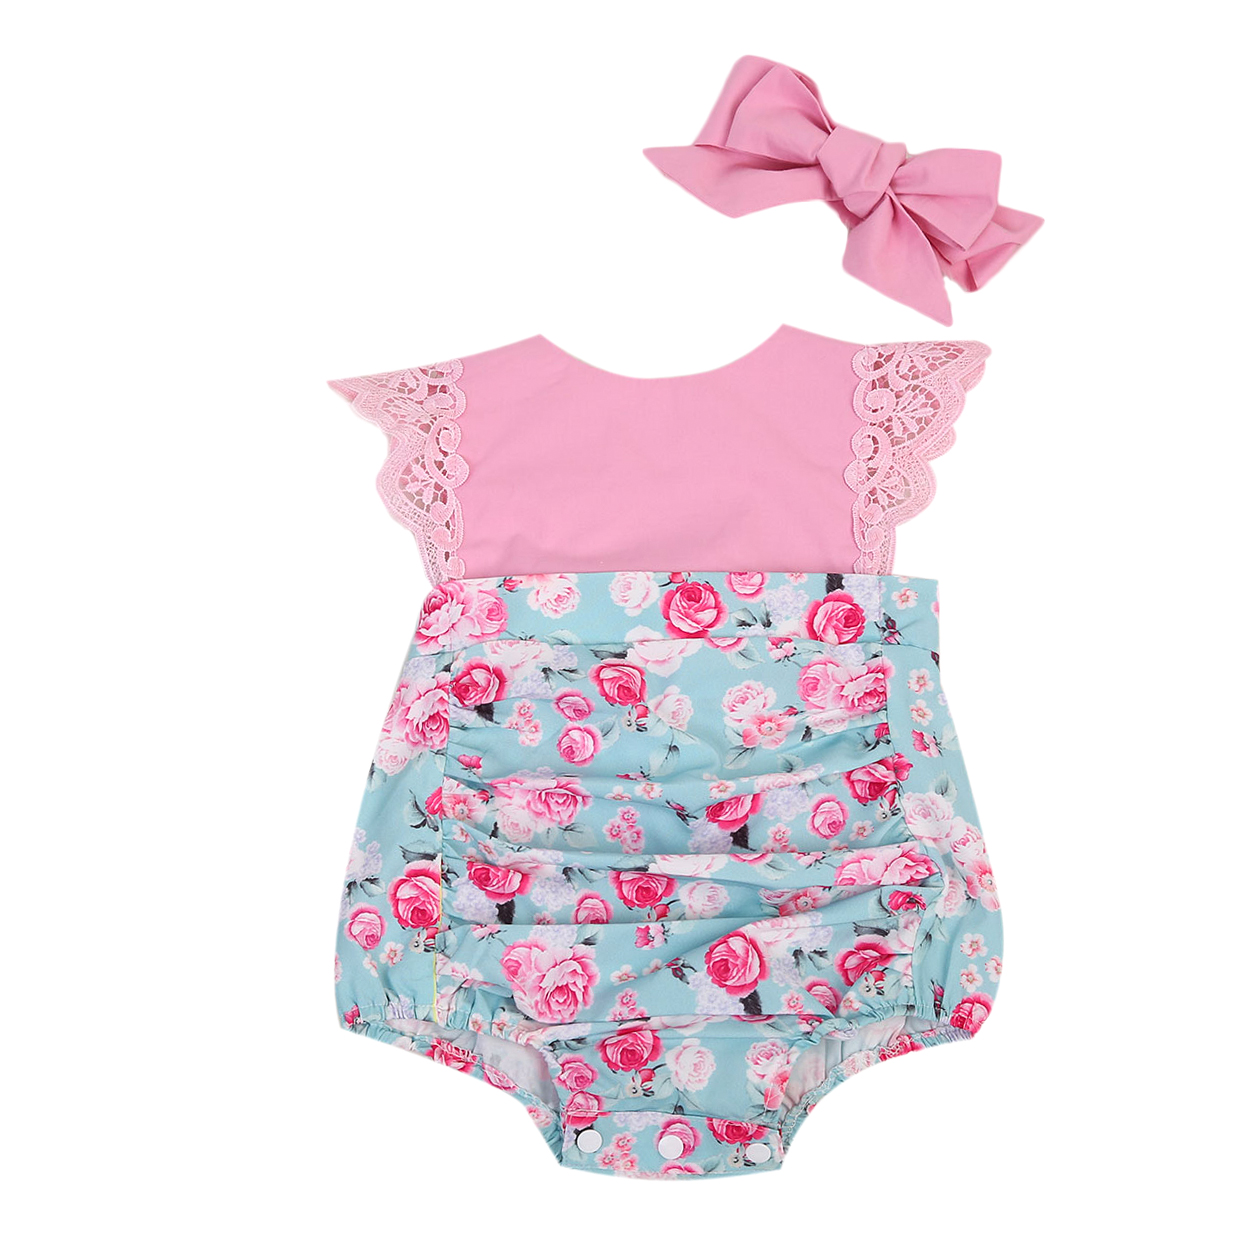 Baby Girls Kids Outfits Set Floral Back Cross Princess   Romper   Lace Flying Sleeve Jumpsuit Party Sunsuit Clothing